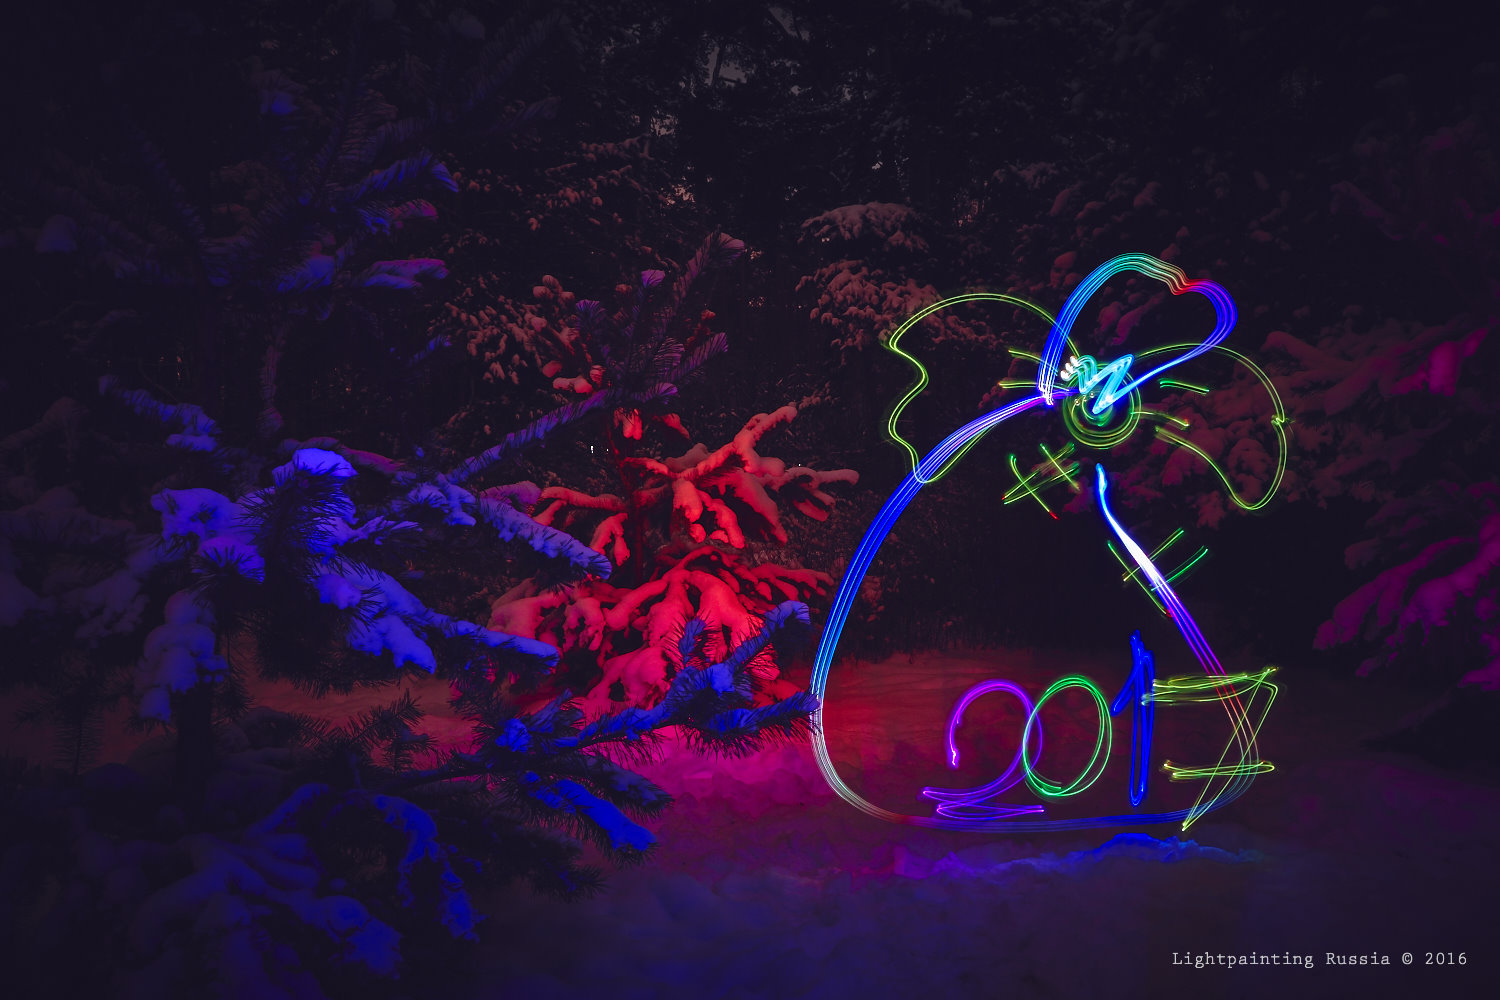 Light painting Happy new year 2017!